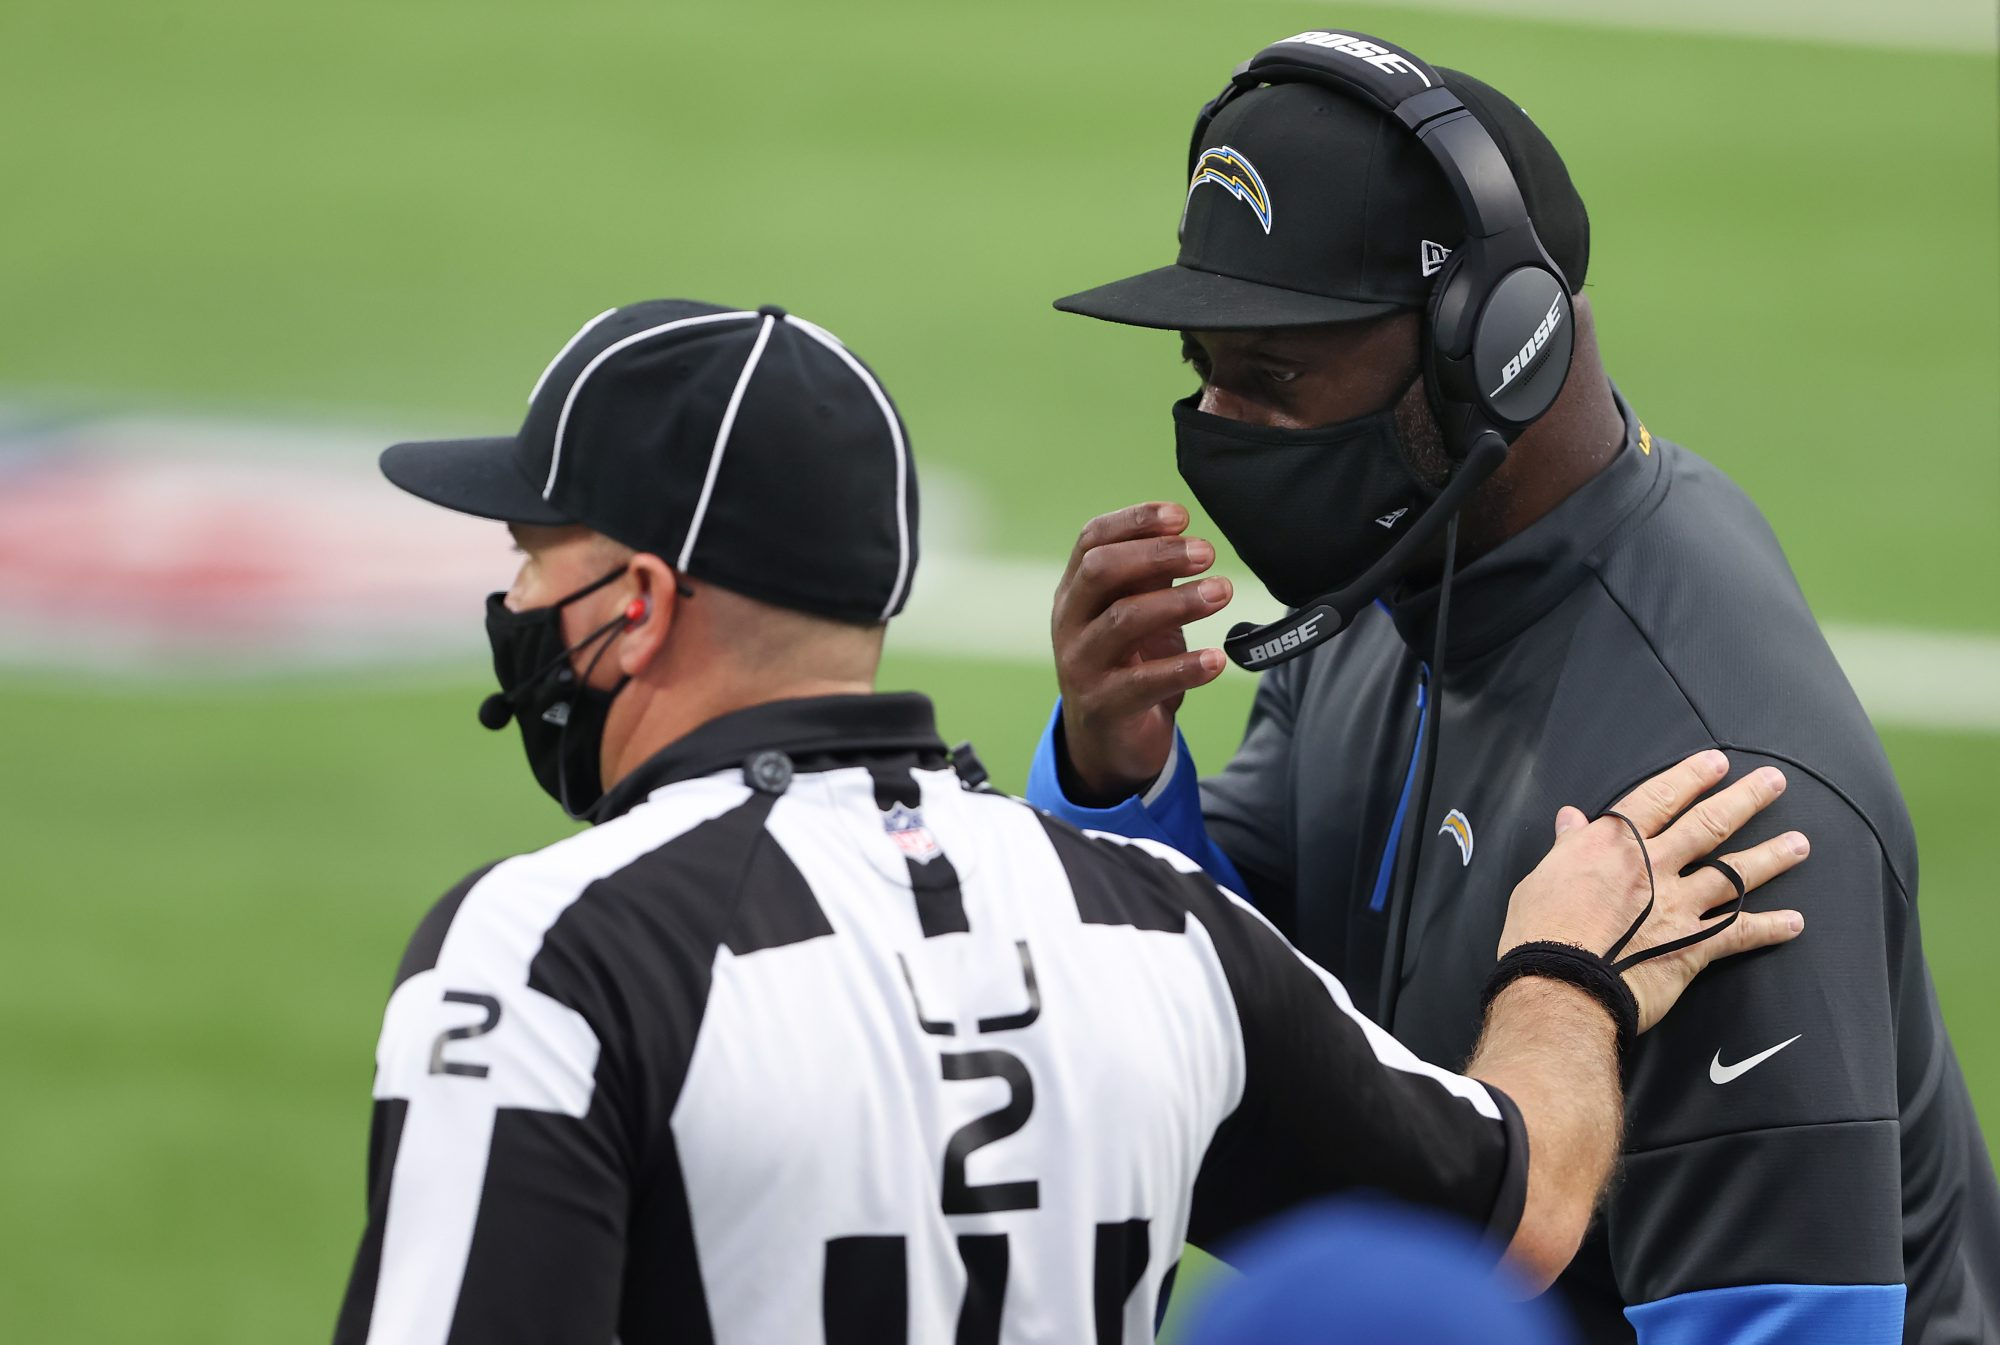 Chargers head coach Anthony Lynn talks with an official.